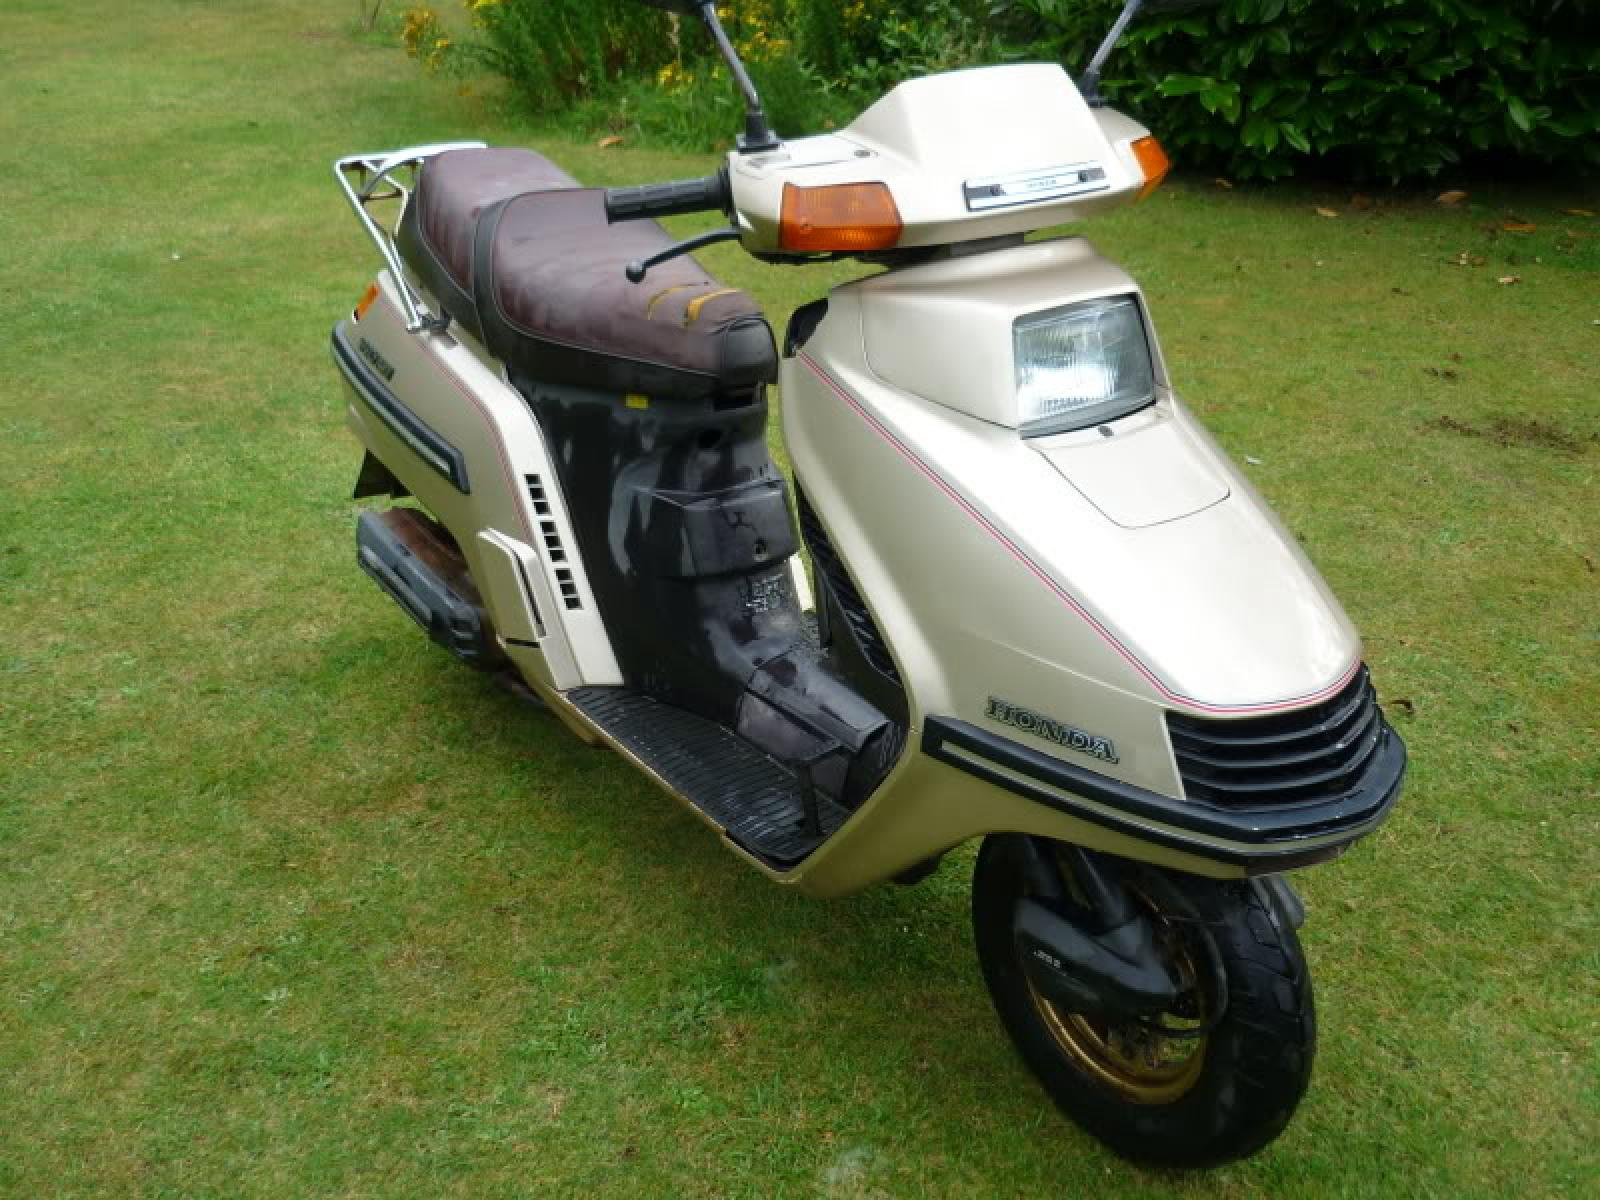 Honda Honda CH 250 Spacy/Elite - Moto ZombDrive COM